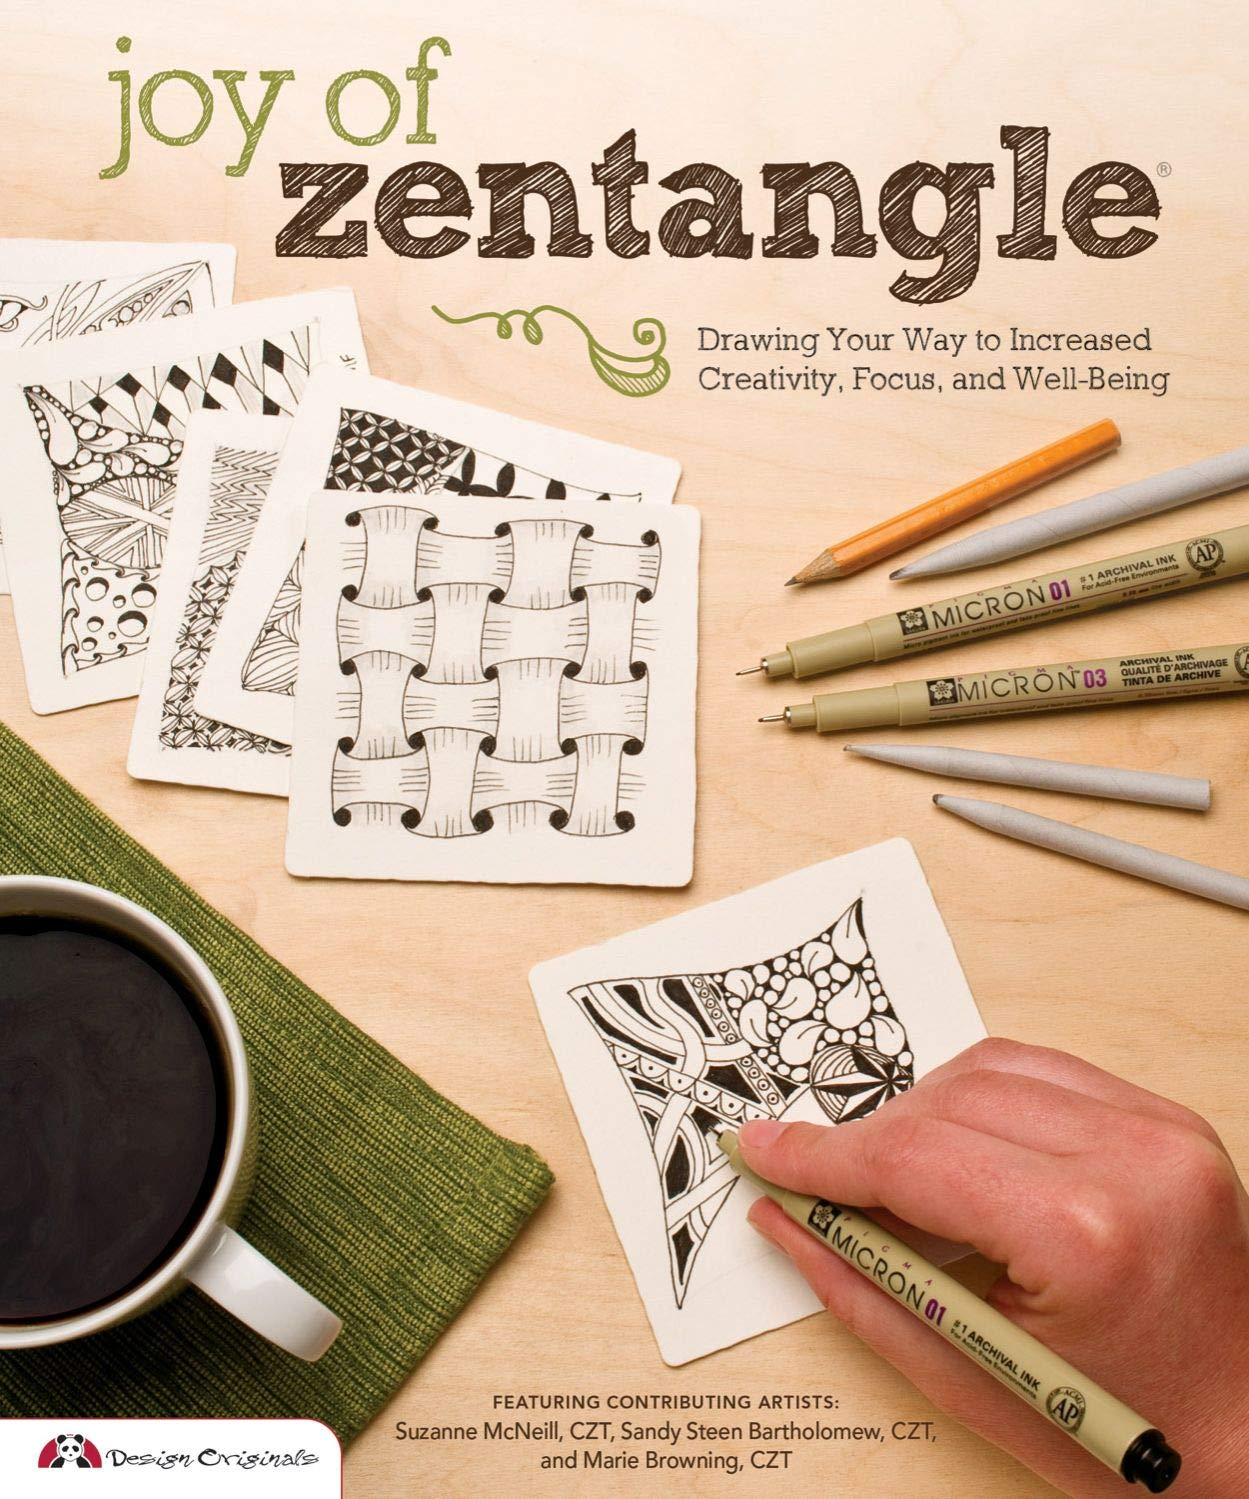 Joy of Zentangle: Drawing Your Way to Increased Creativity, Focus, and Well-Being (Design Originals) Instructions for 101 Tangle Patterns from CZTs Suzanne McNeill, Sandy Steen Bartholomew, & More